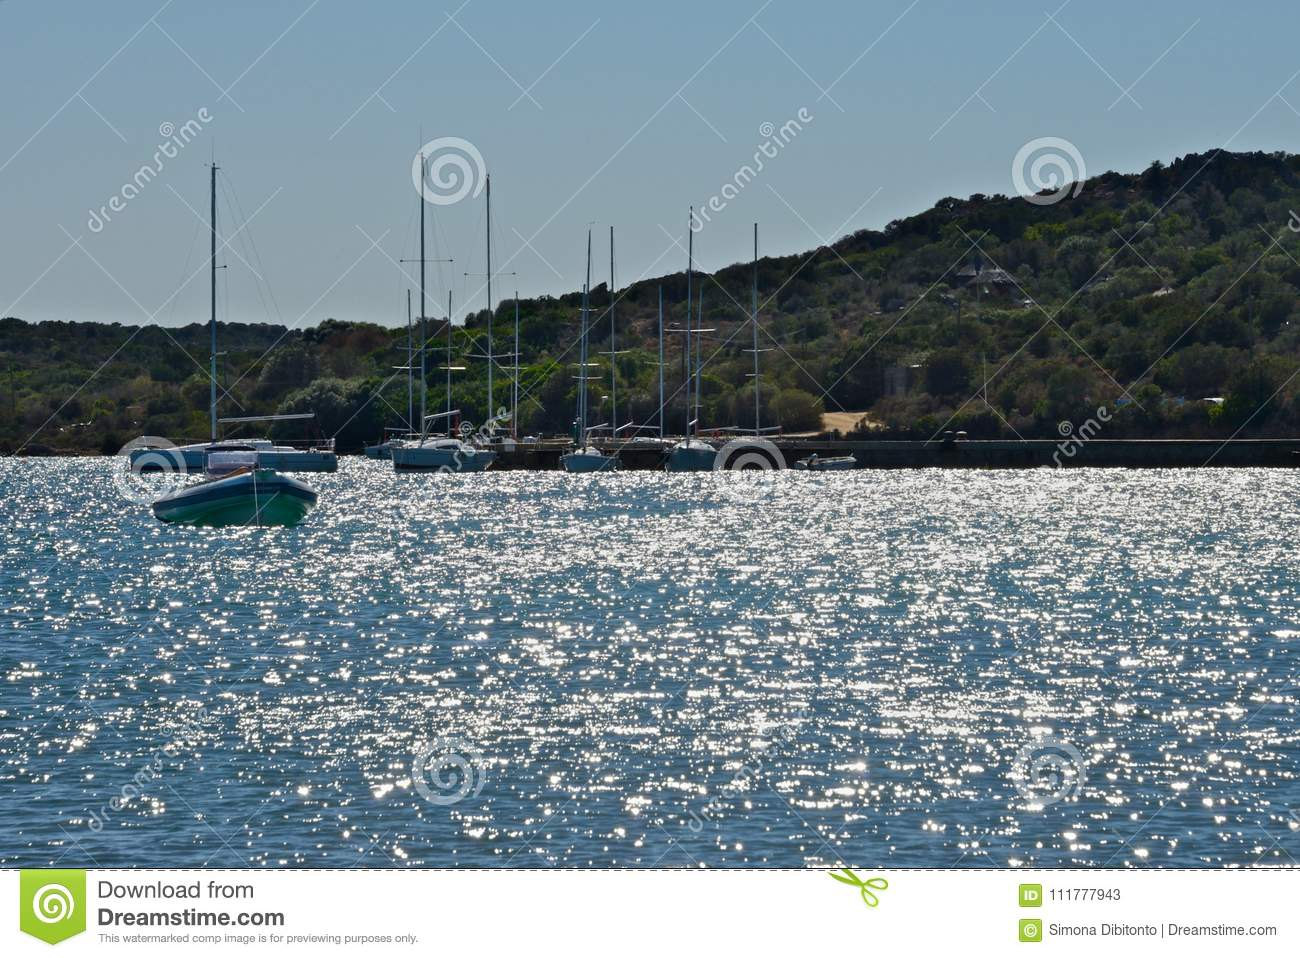 Seascape with glittering sea and and yachts moored surrounded by nature